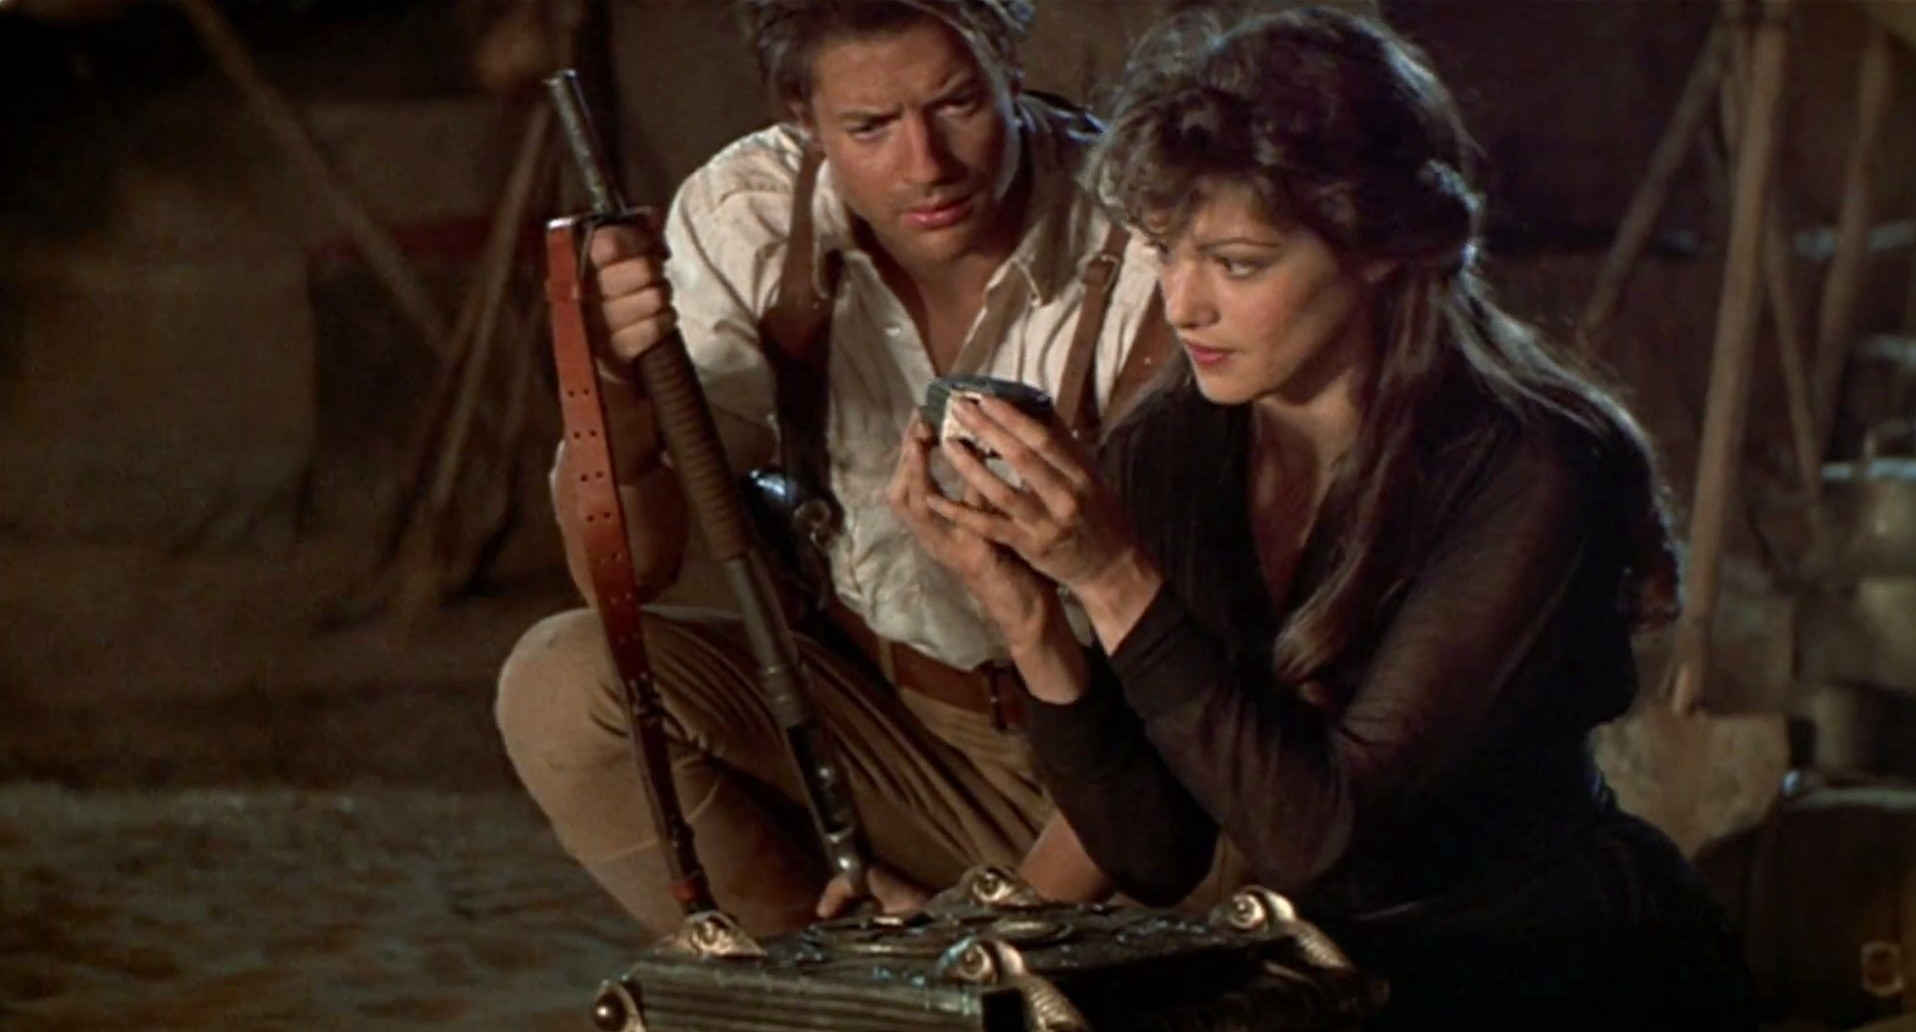 Rick and Evie looking at an Egyptian artefact together